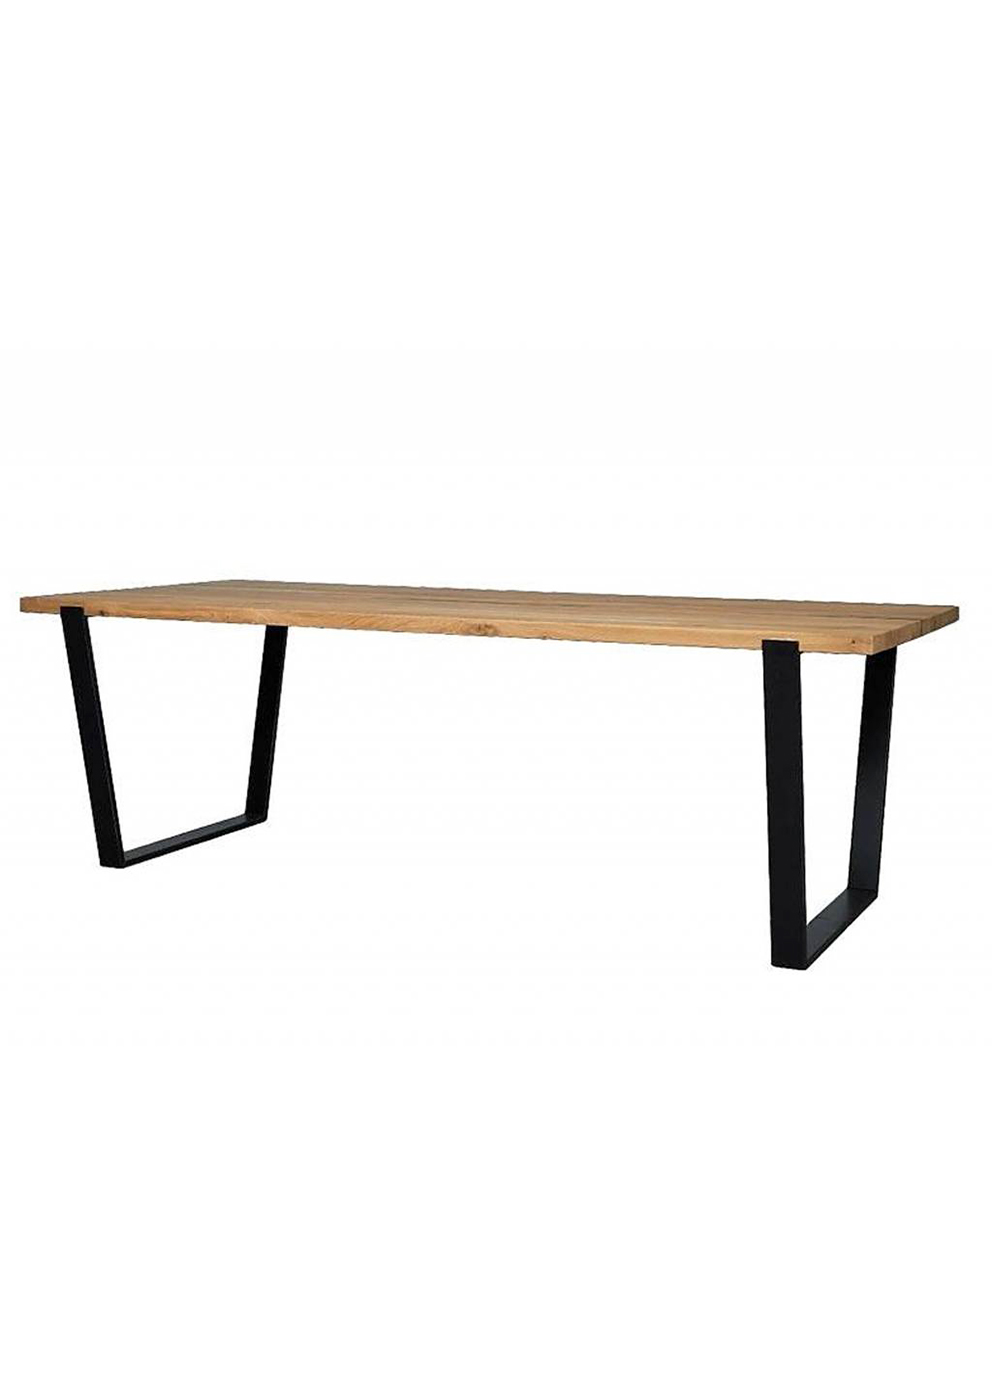 Evolution Design tafel - massief eik